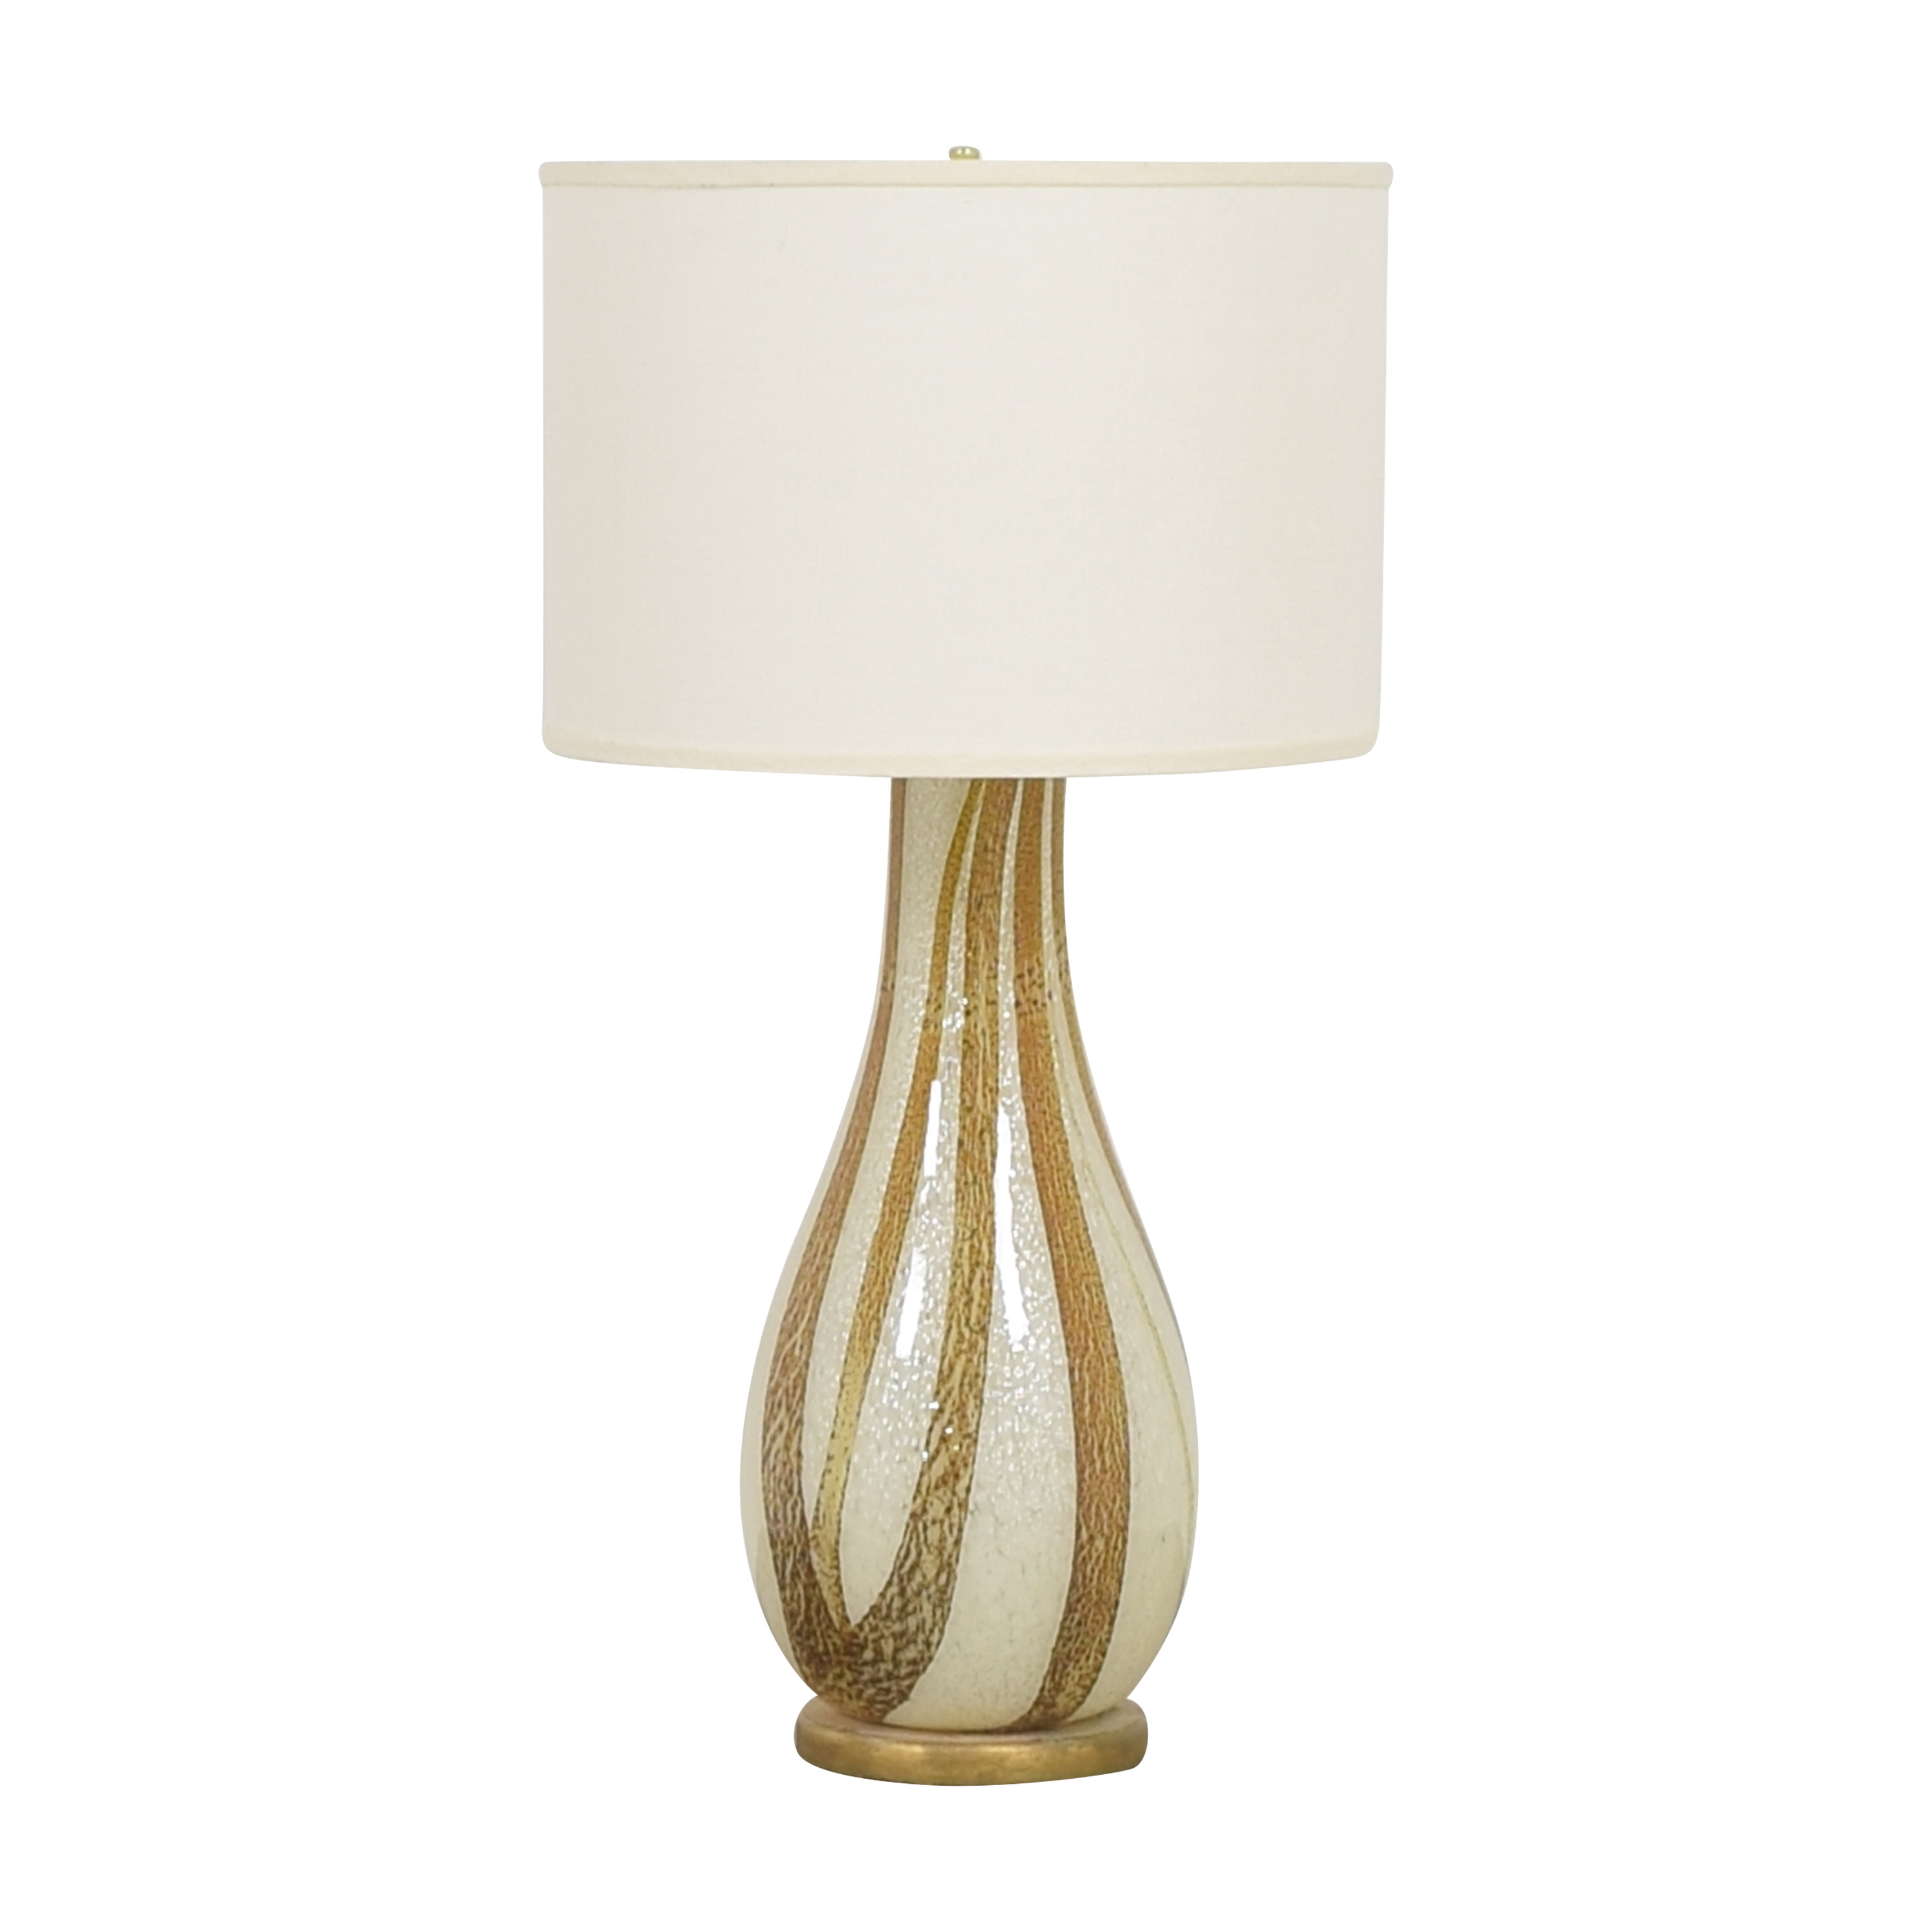 Vase Style Table Lamp dimensions